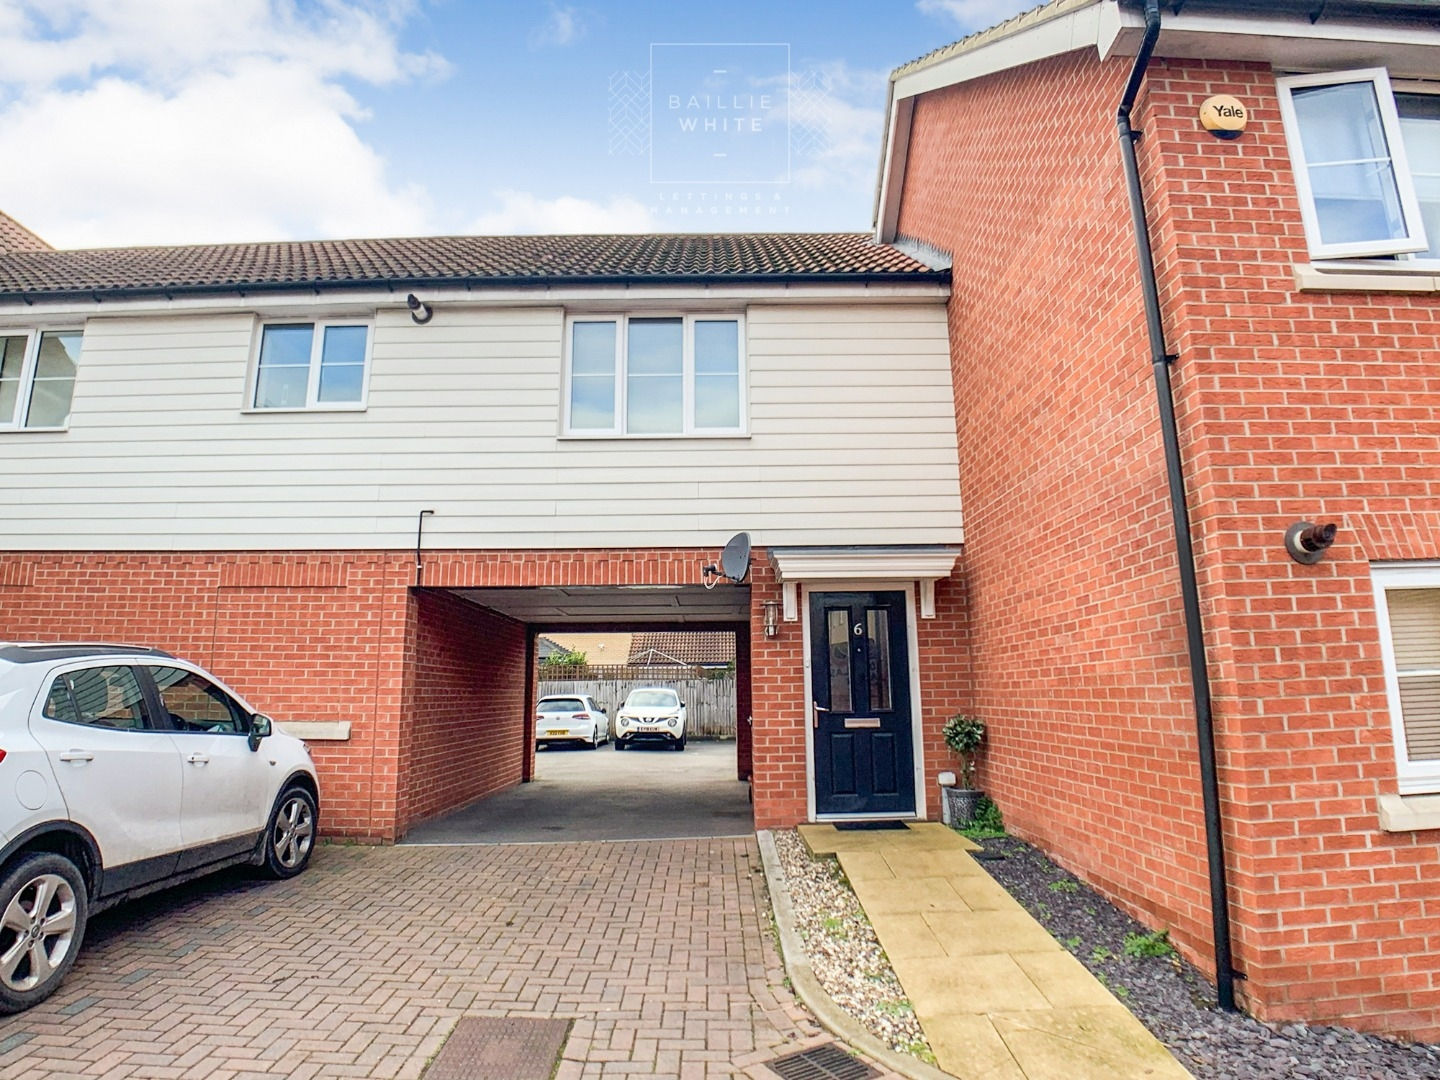 2 bed apartment to rent in Liddell Drive, Basildon SS14 - Property Image 1